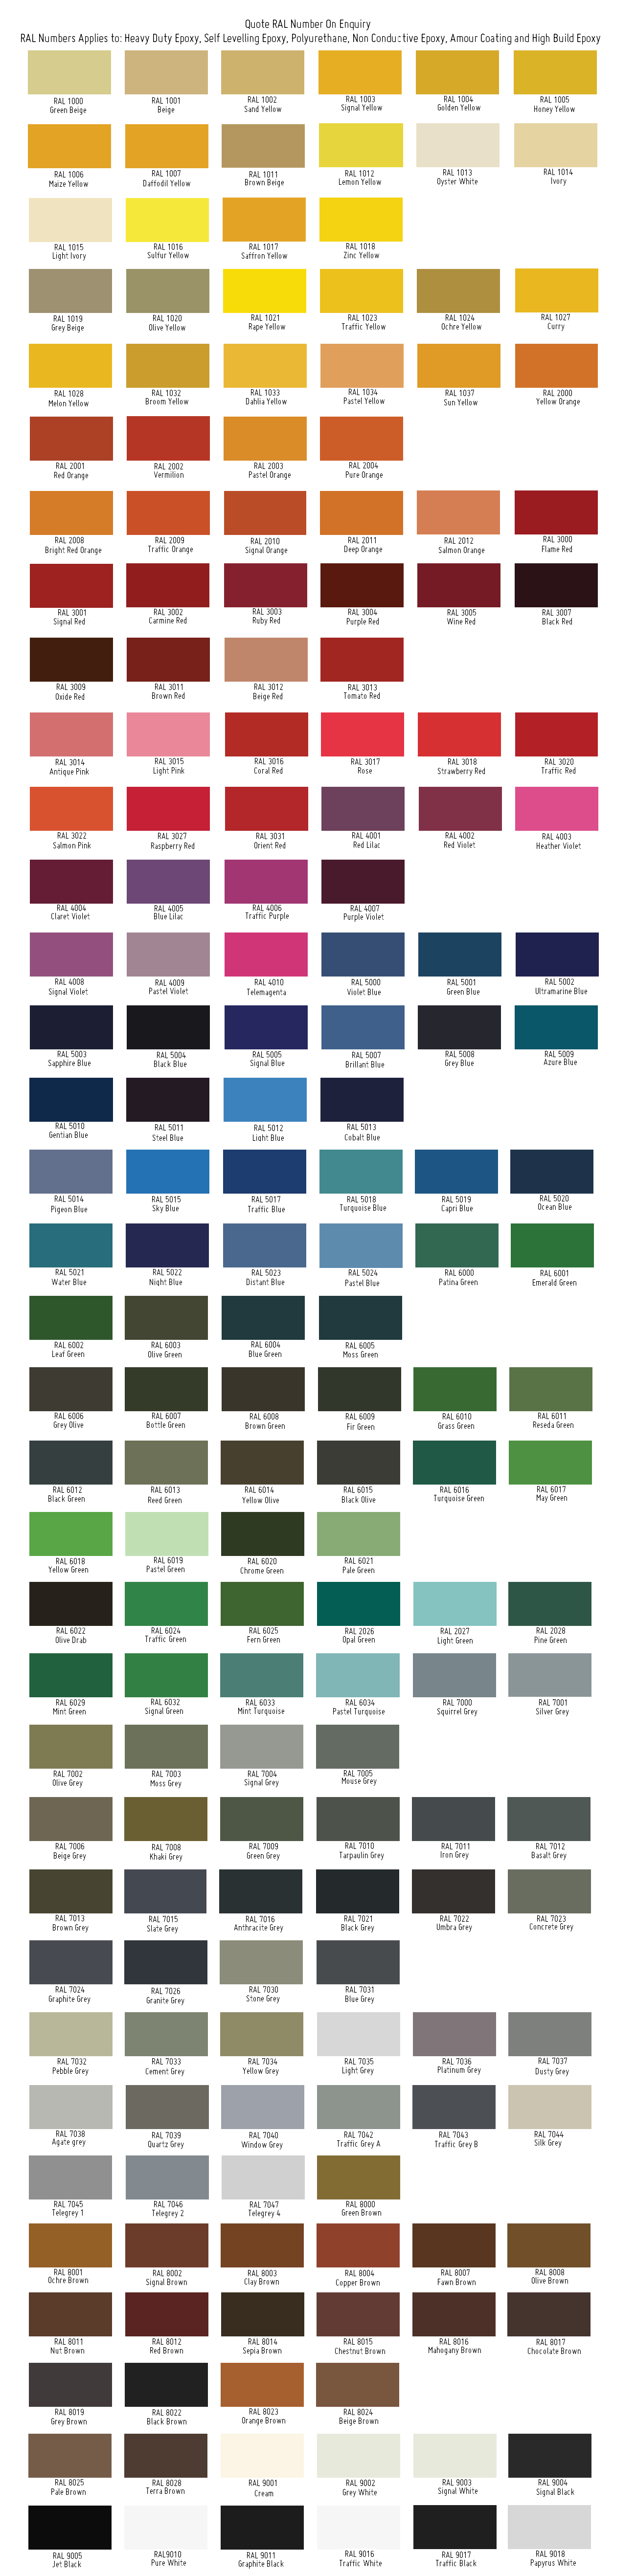 ncs in ral color bridge guide uncoated color swatches. Black Bedroom Furniture Sets. Home Design Ideas